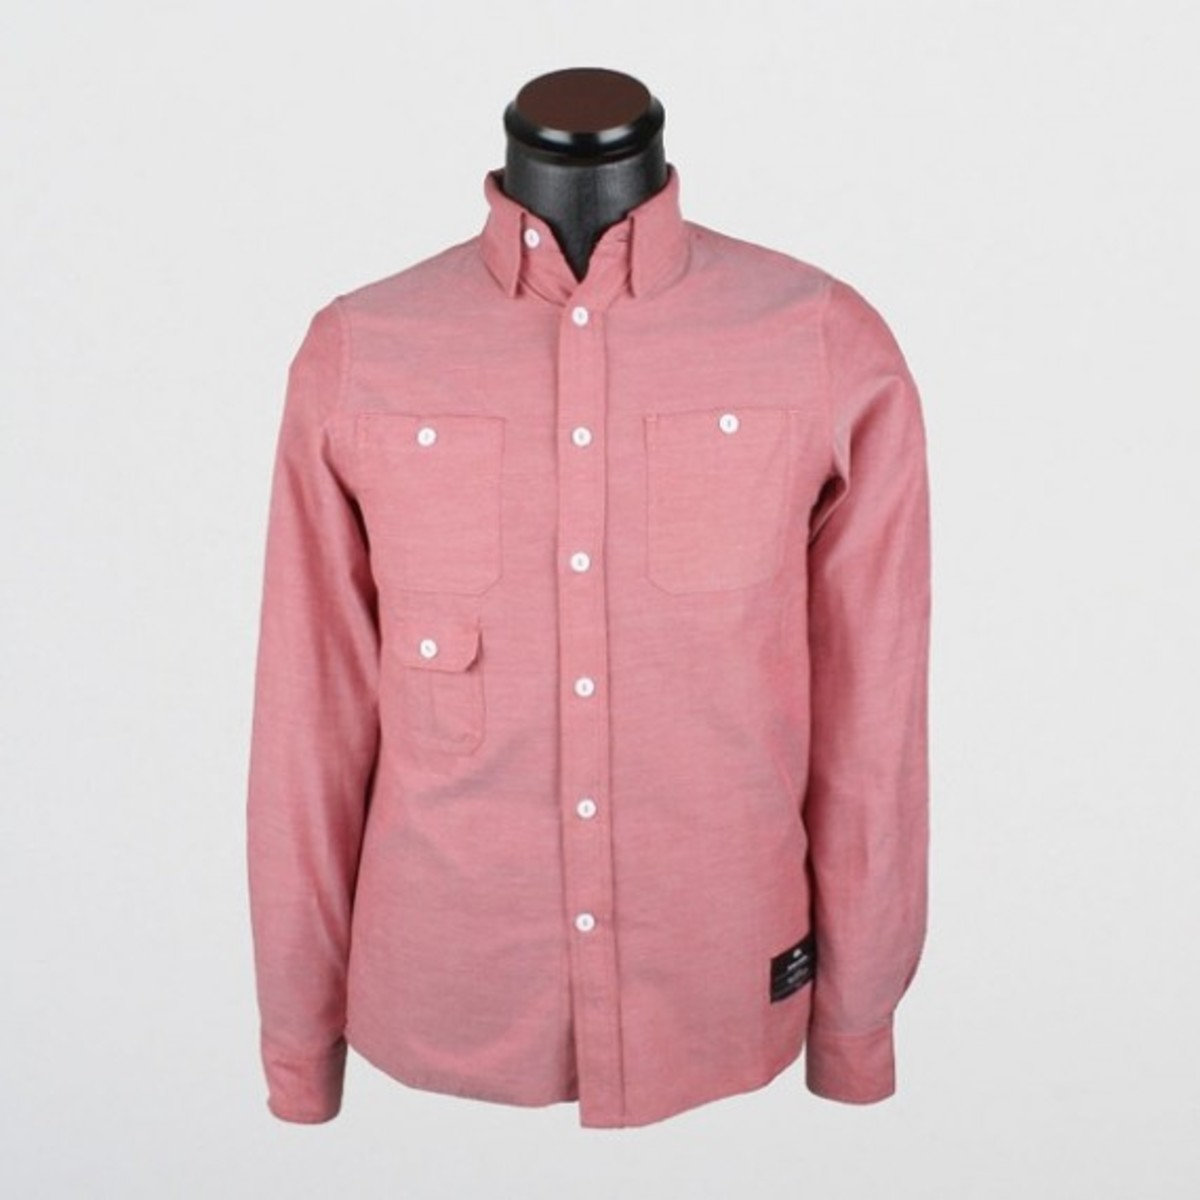 STPL-Freeman-Long-Sleeve-Button-Shirt-SP11_4